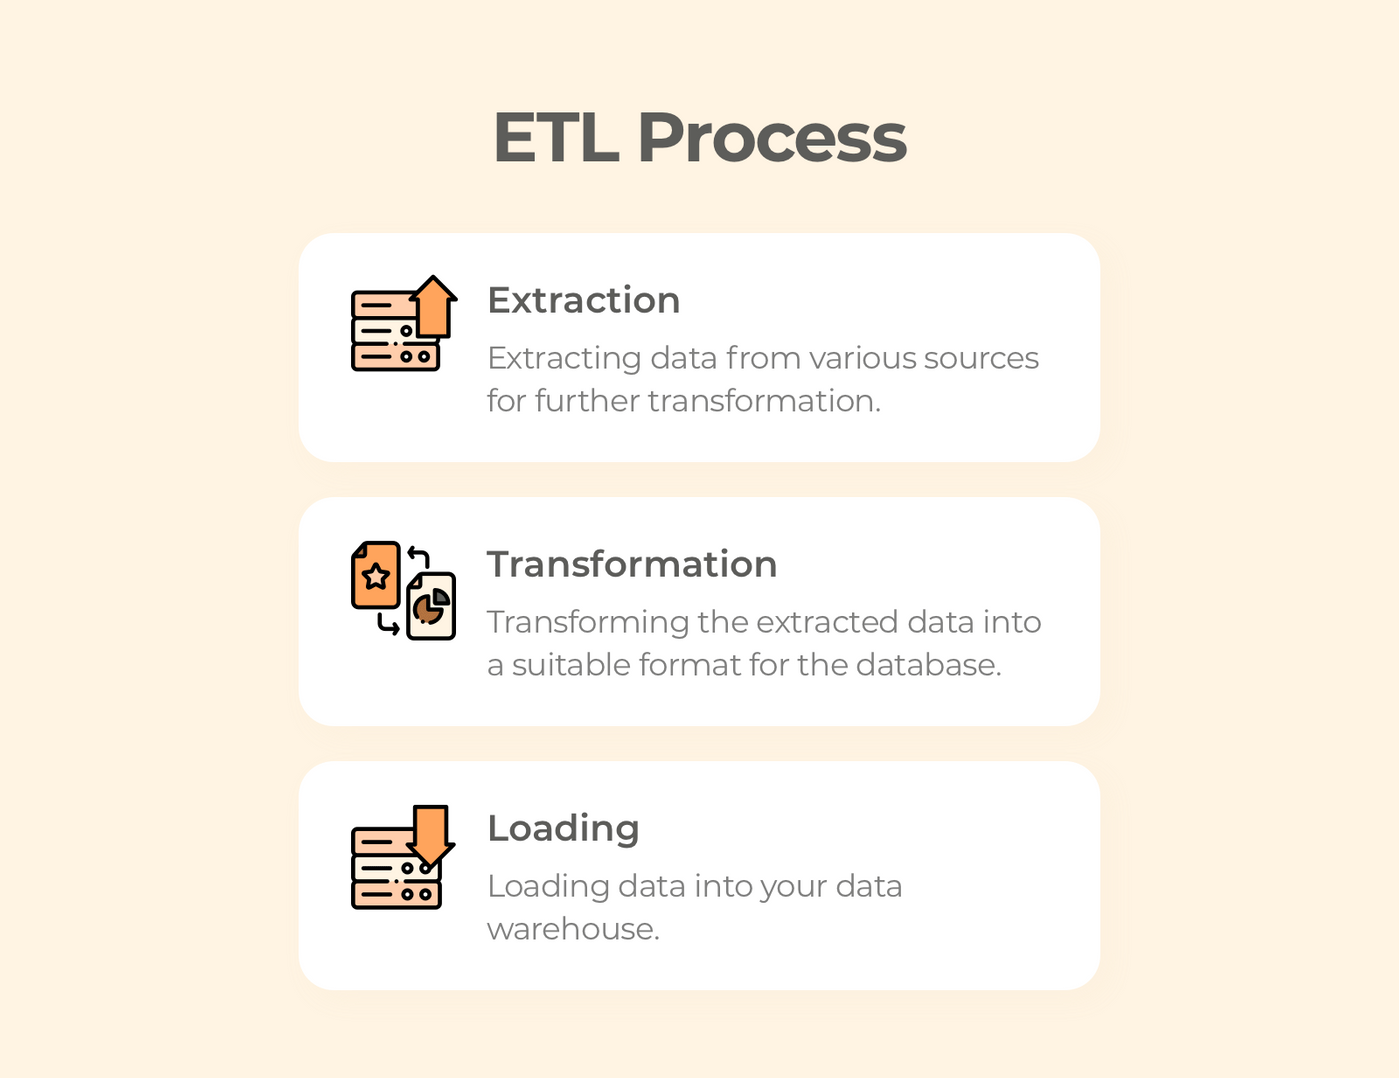 ETL process and its steps